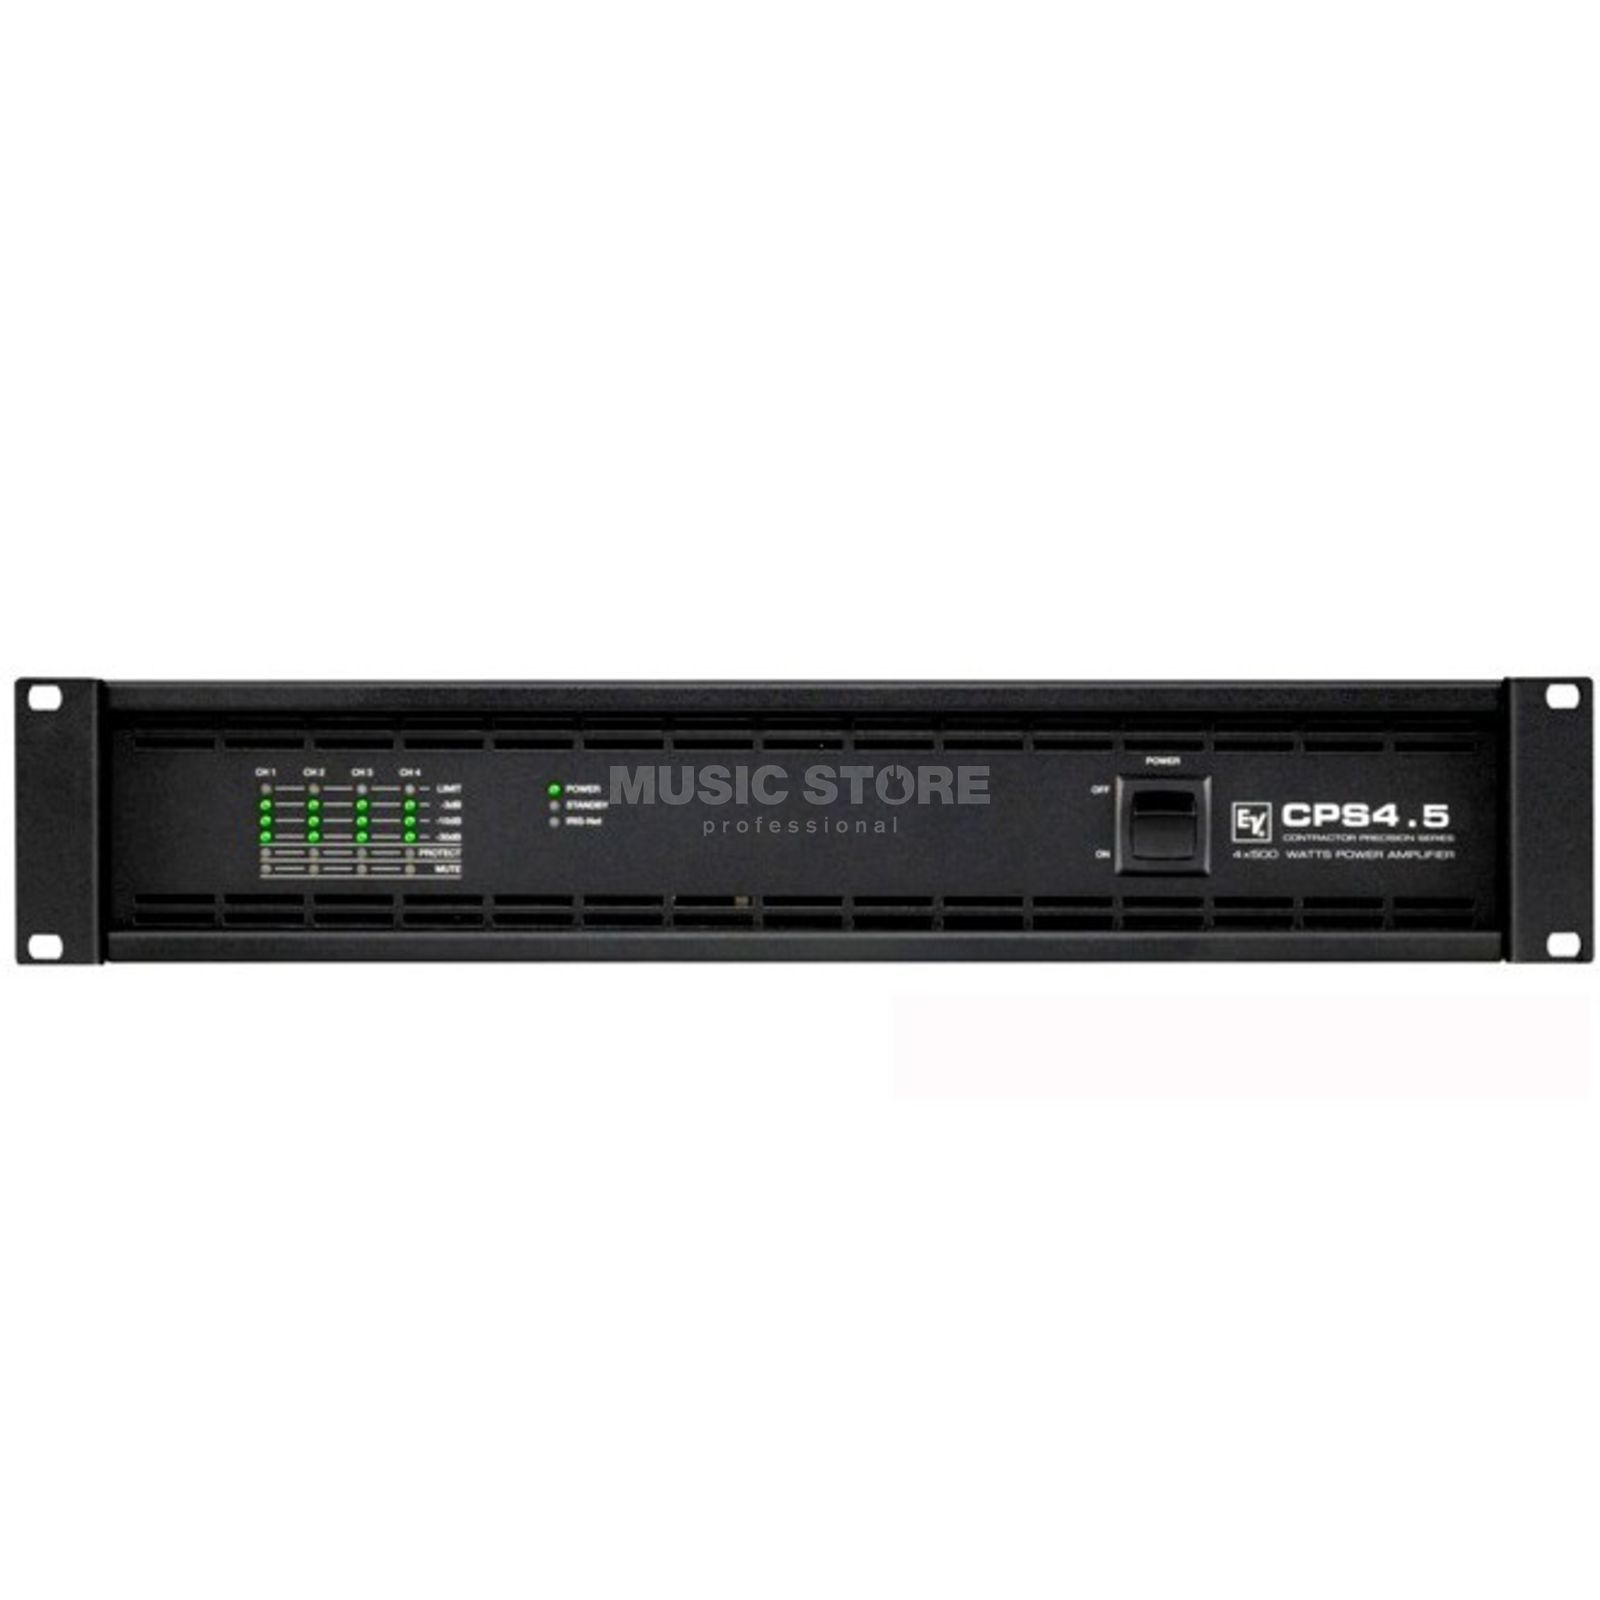 Electro Voice CPS 4.5 4x 500W Amplifier Product Image